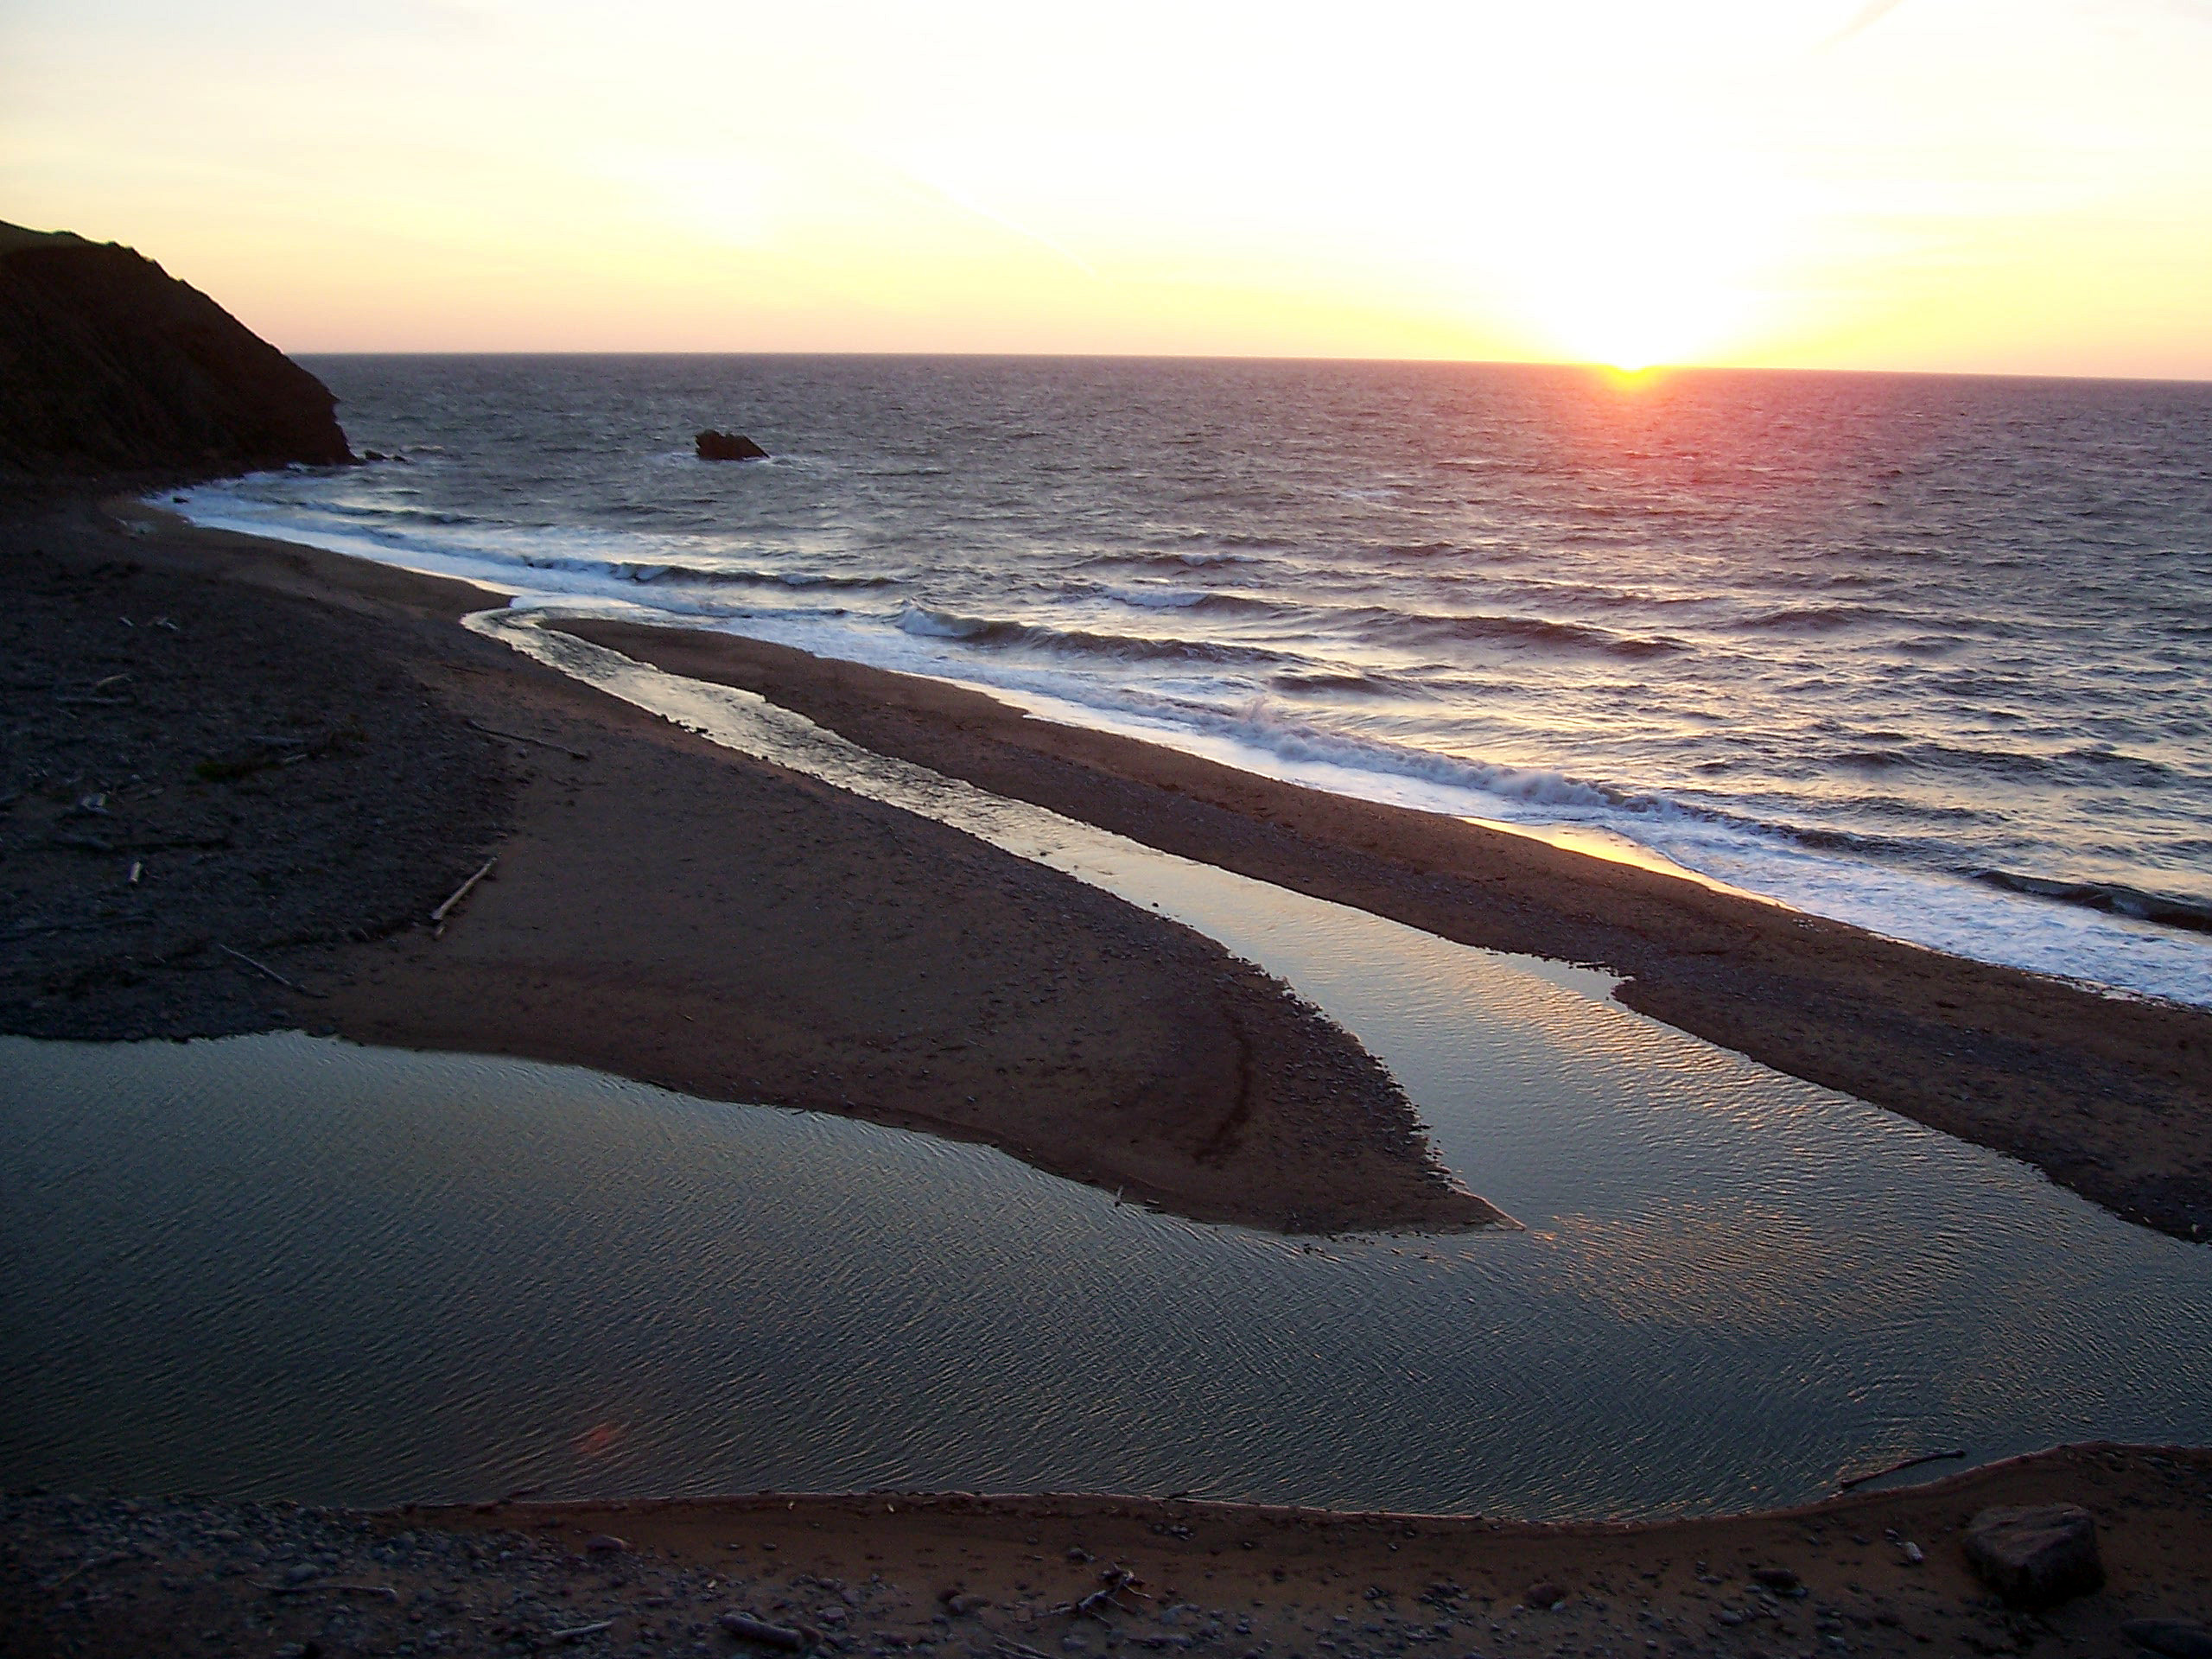 Picture #6 - Pollett's Cove Sunset